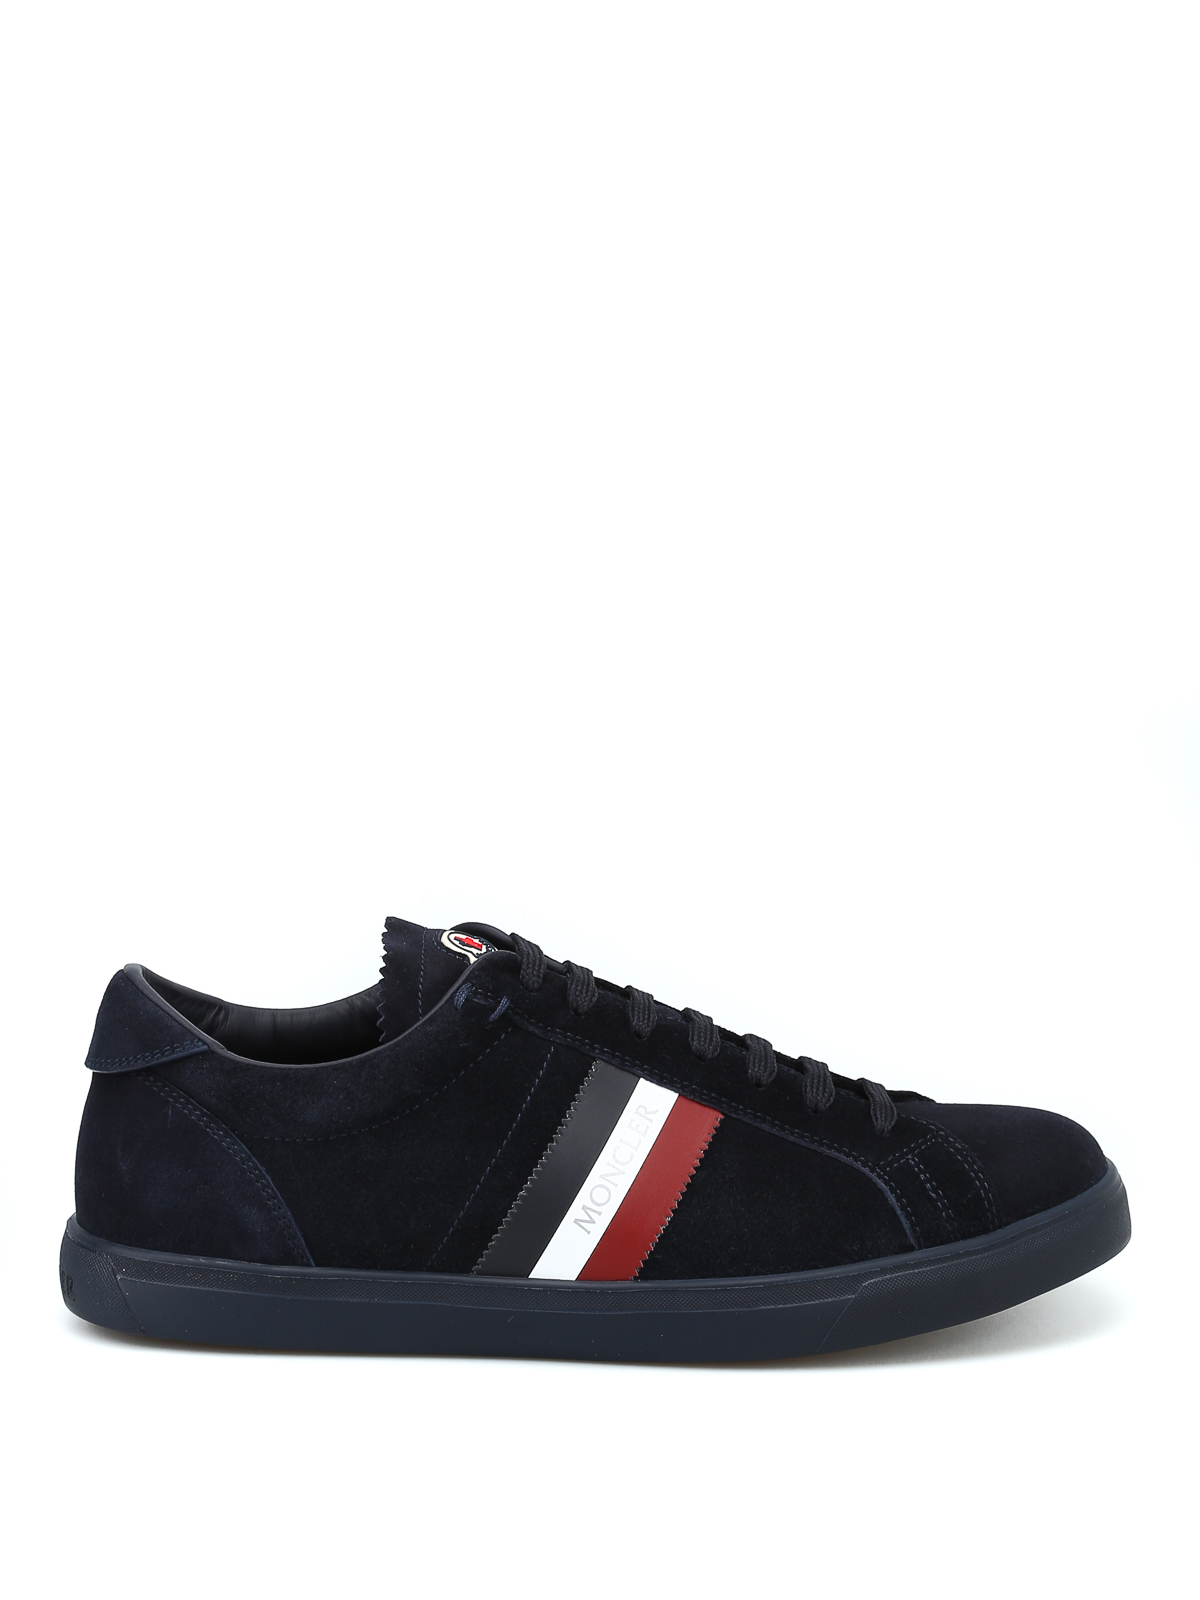 moncler trainers blue